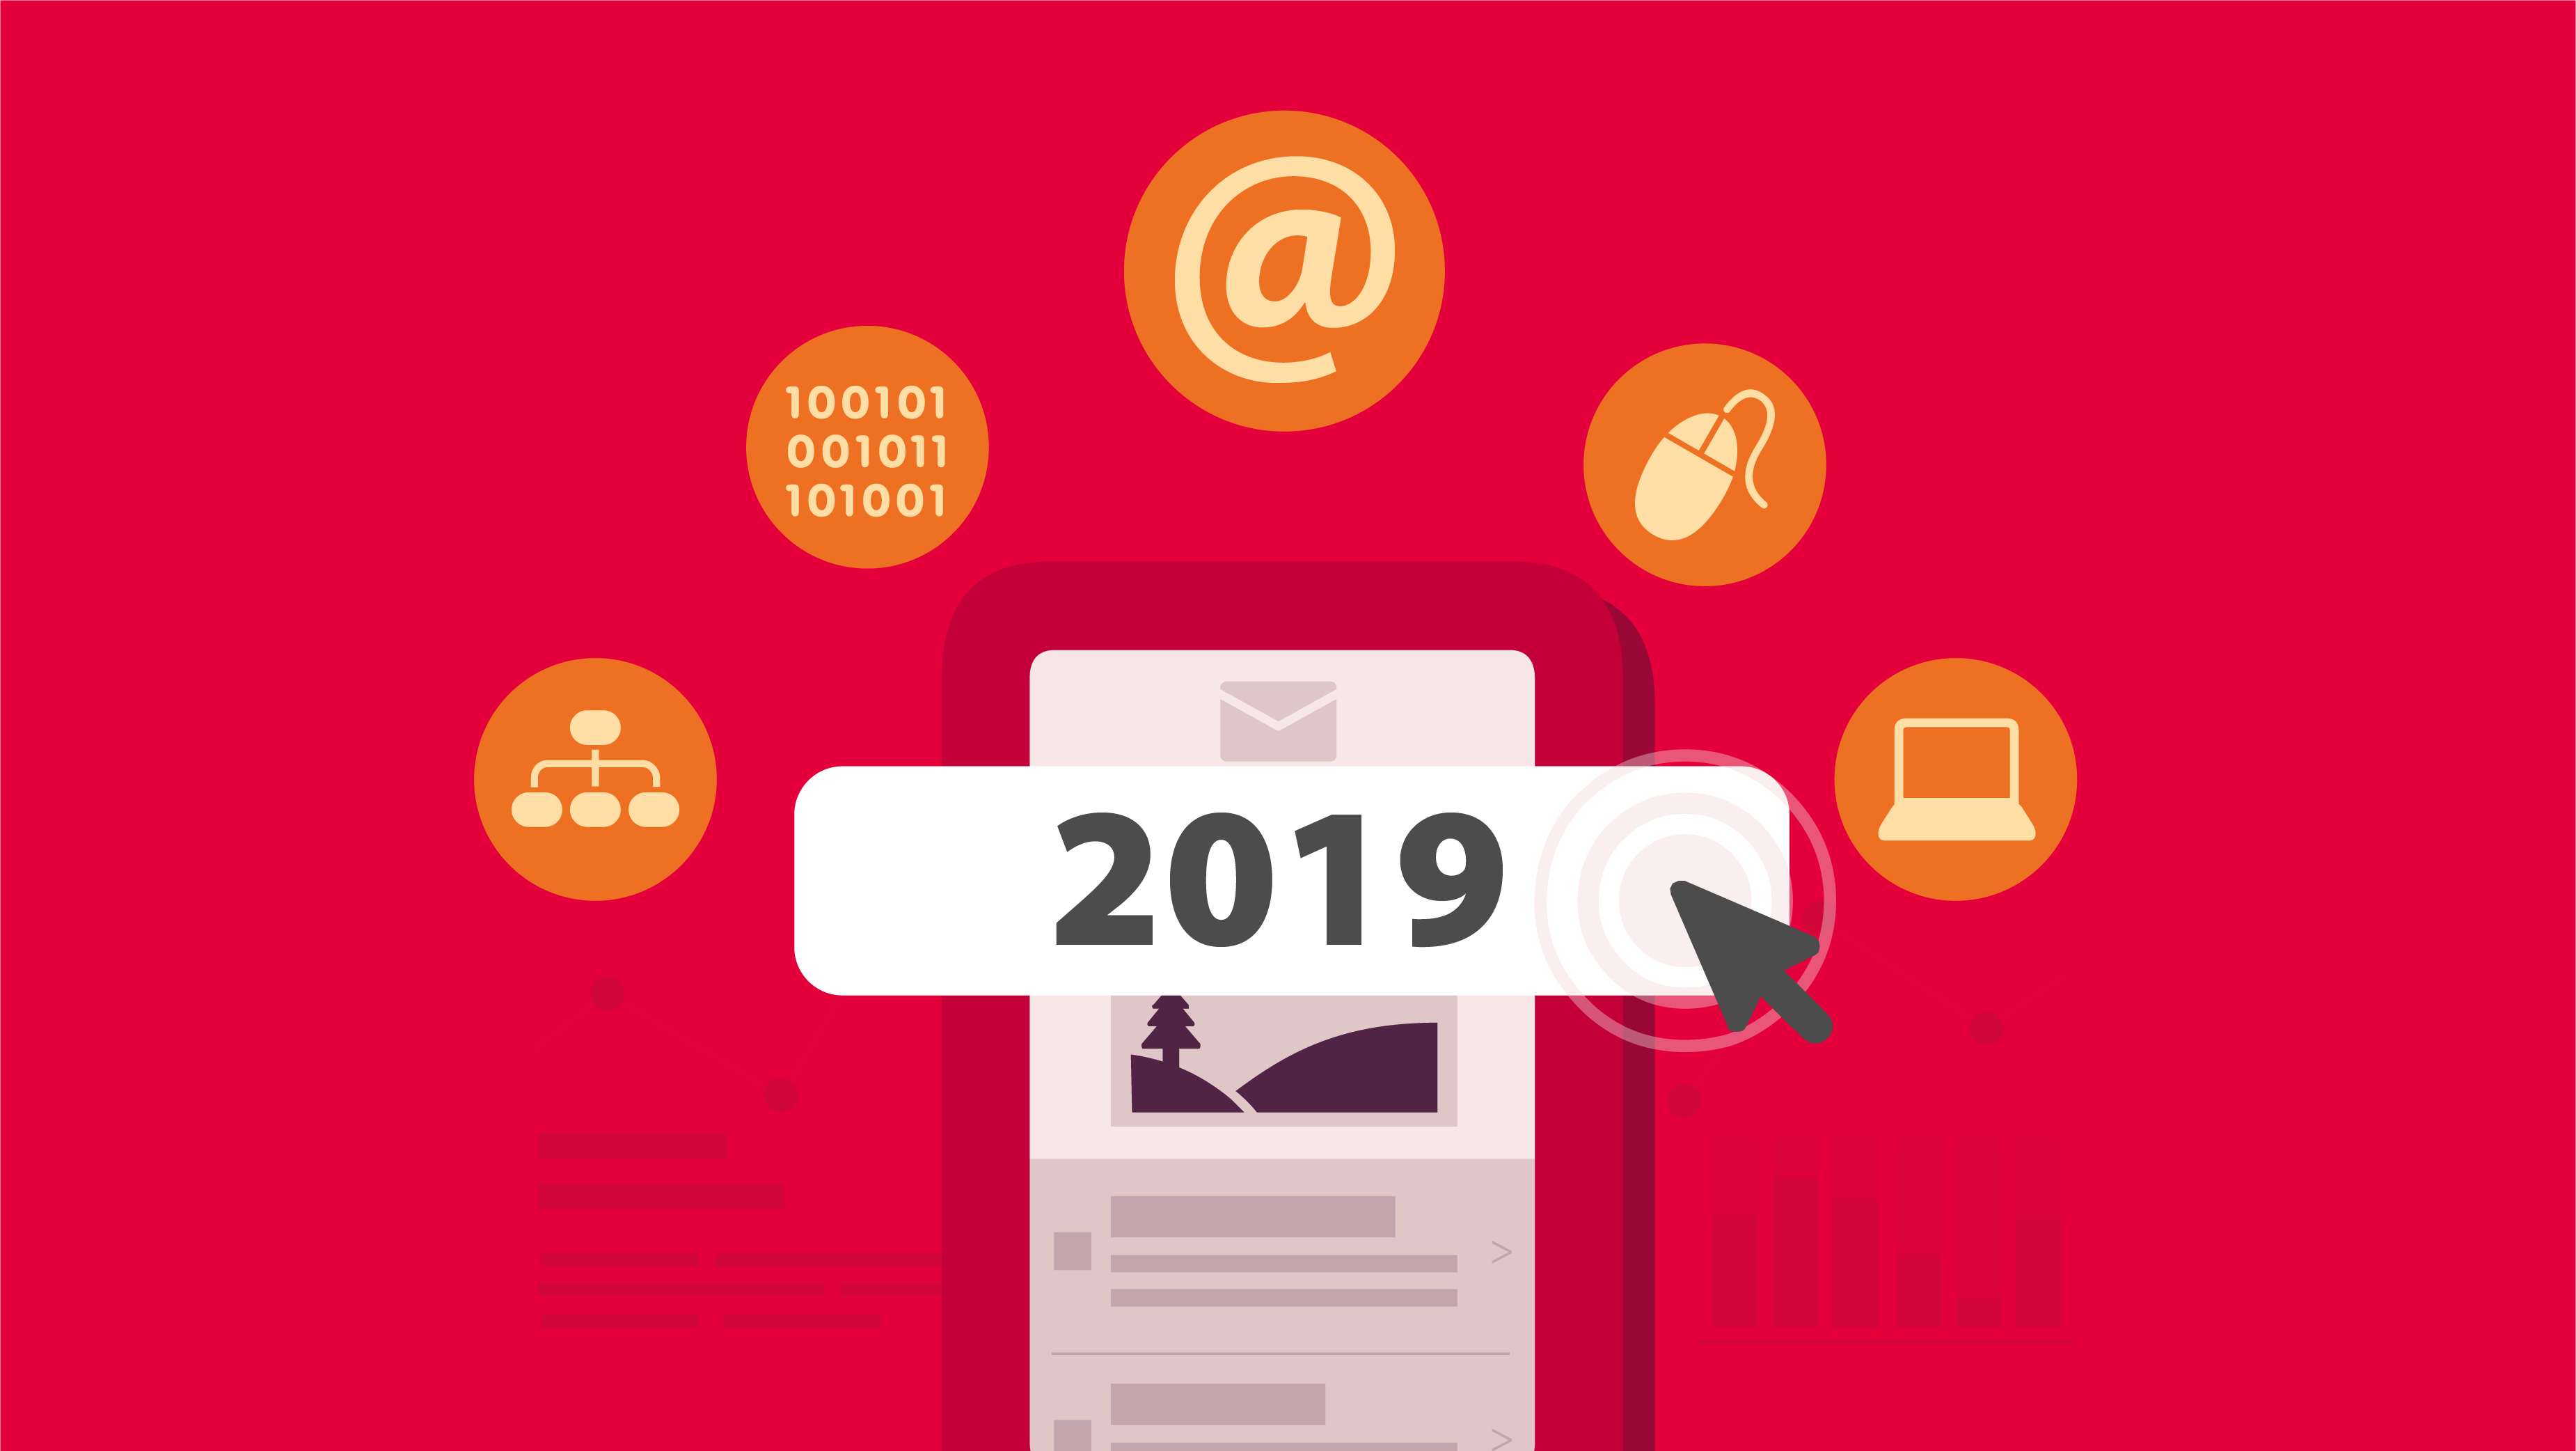 Marketing email tracker 2019 (002).png